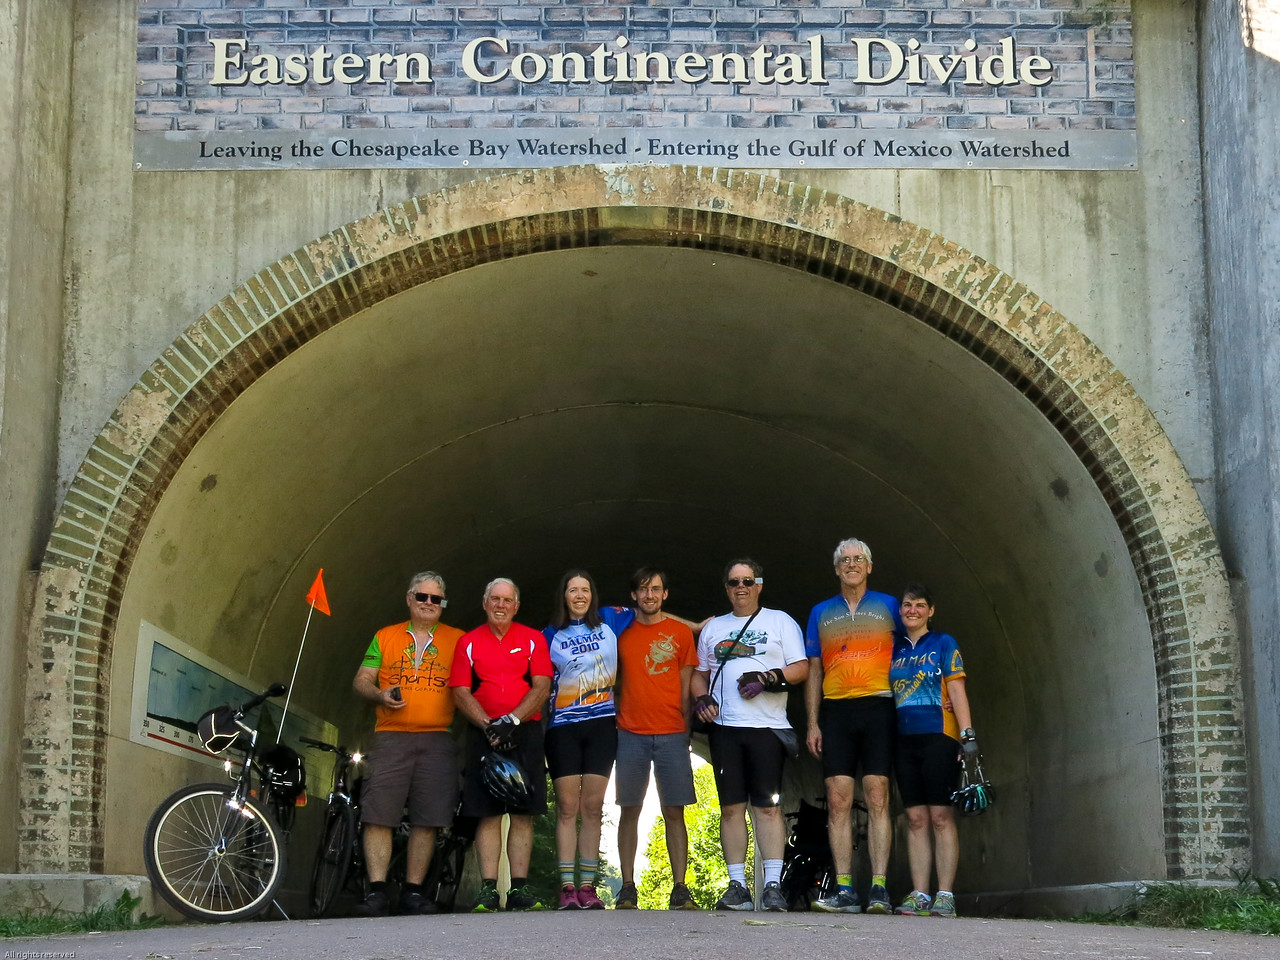 The Eastern Continental Divide at MP 23.5